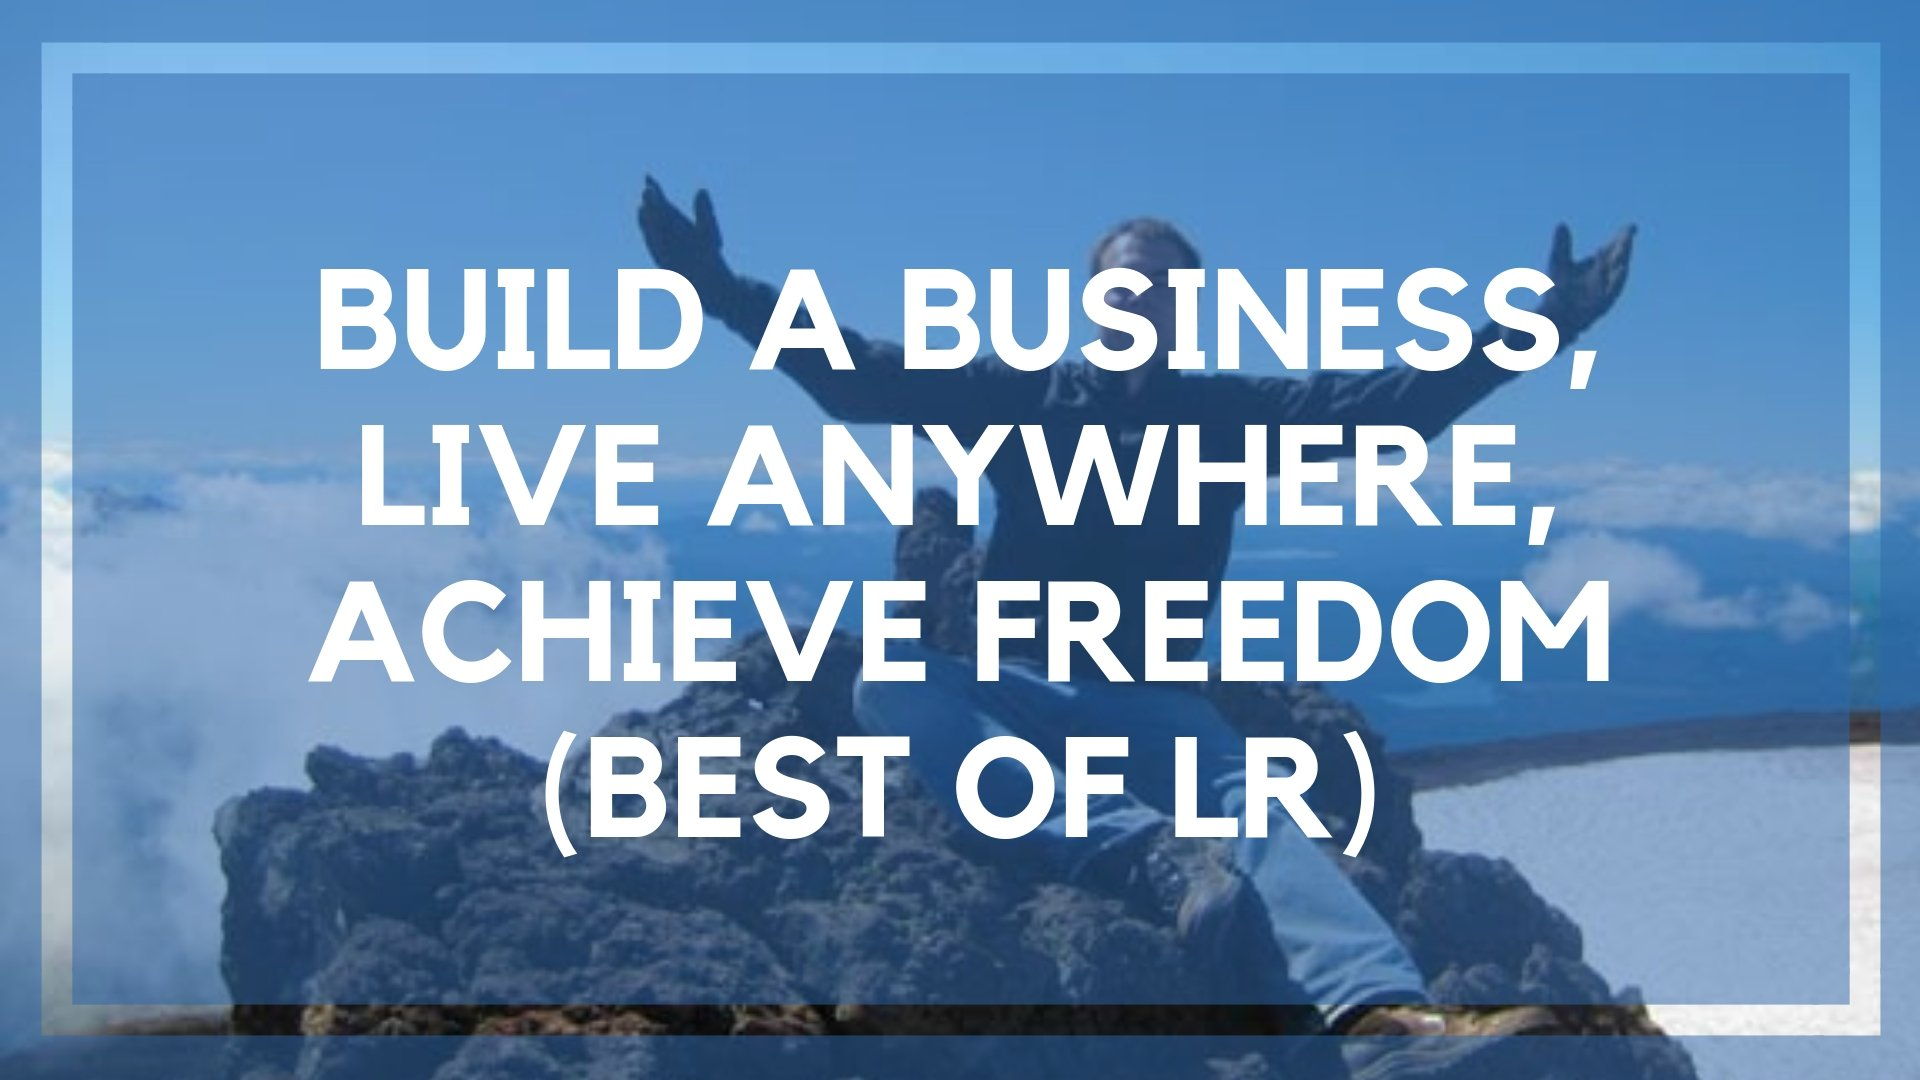 Build a Business, Live Anywhere, Achieve Freedom (Best of LR)